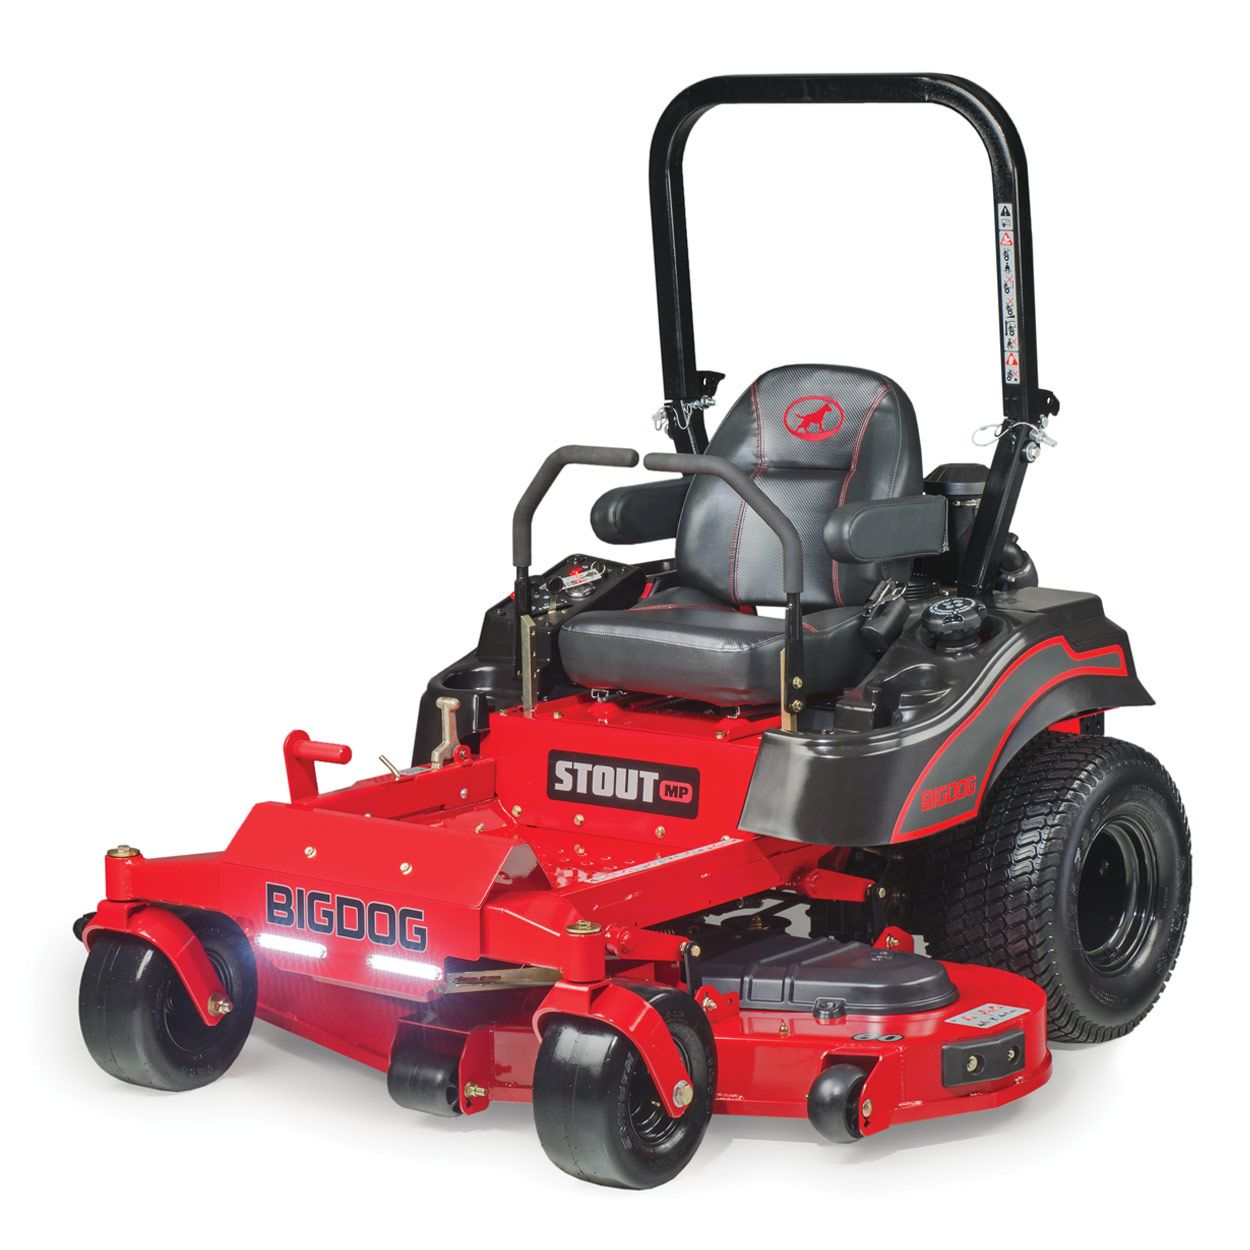 New, 2020, BigDog Mower Co, Stout 54